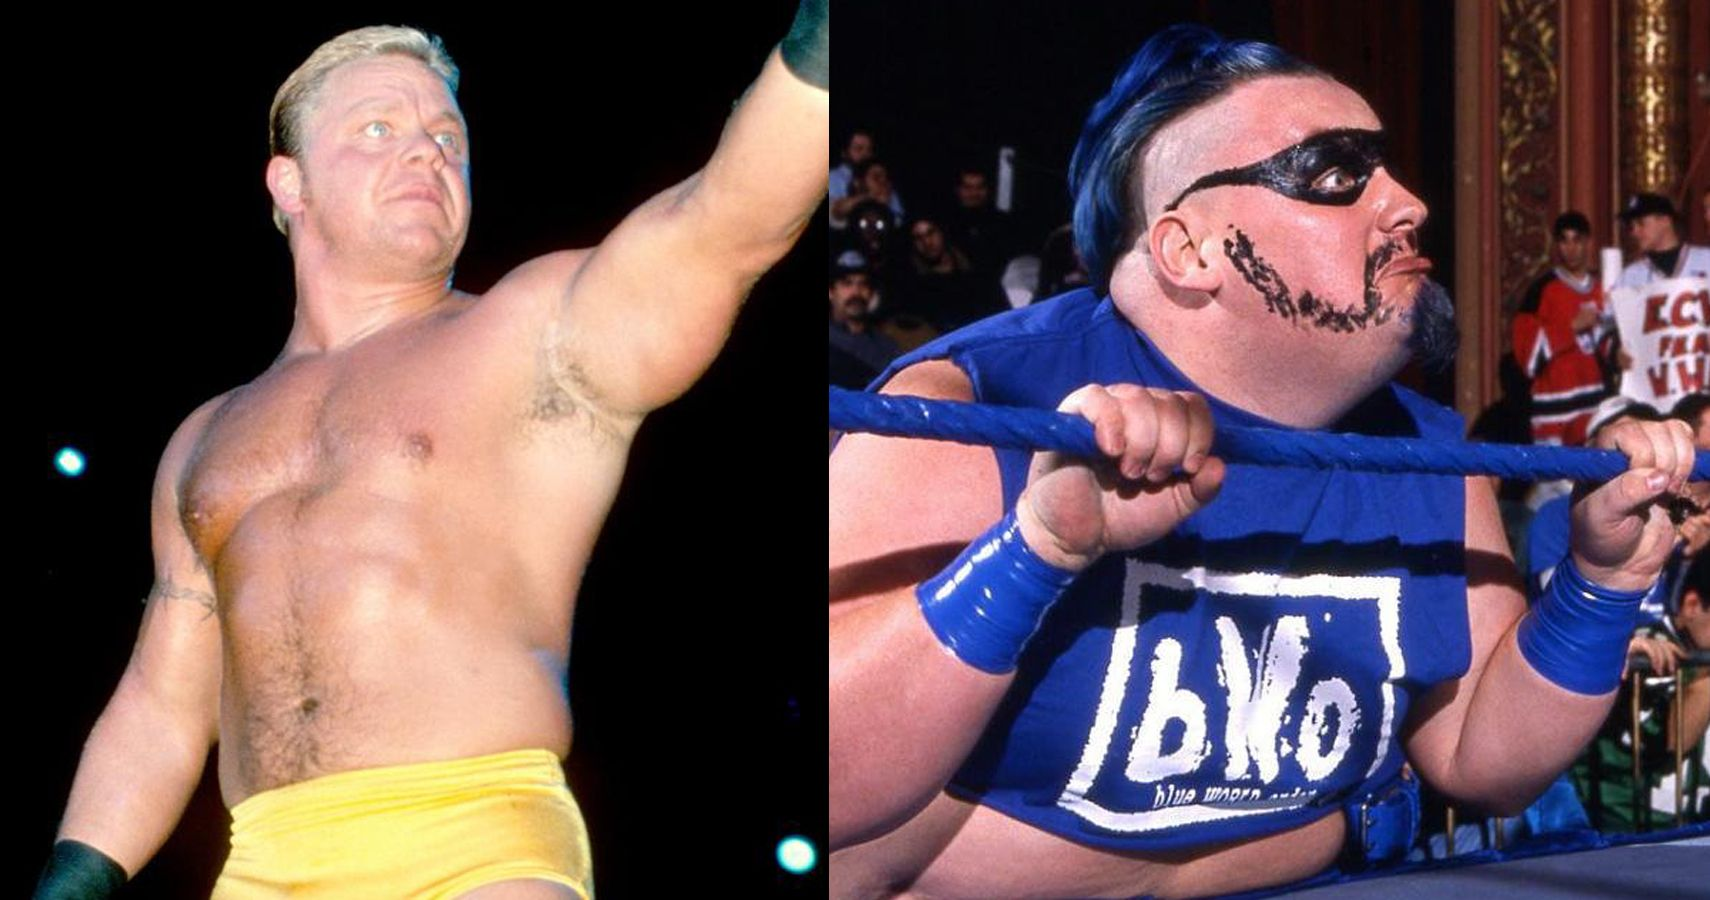 www.thesportster.com10 ECW Wrestlers That WWE Did Not Want to Succeed